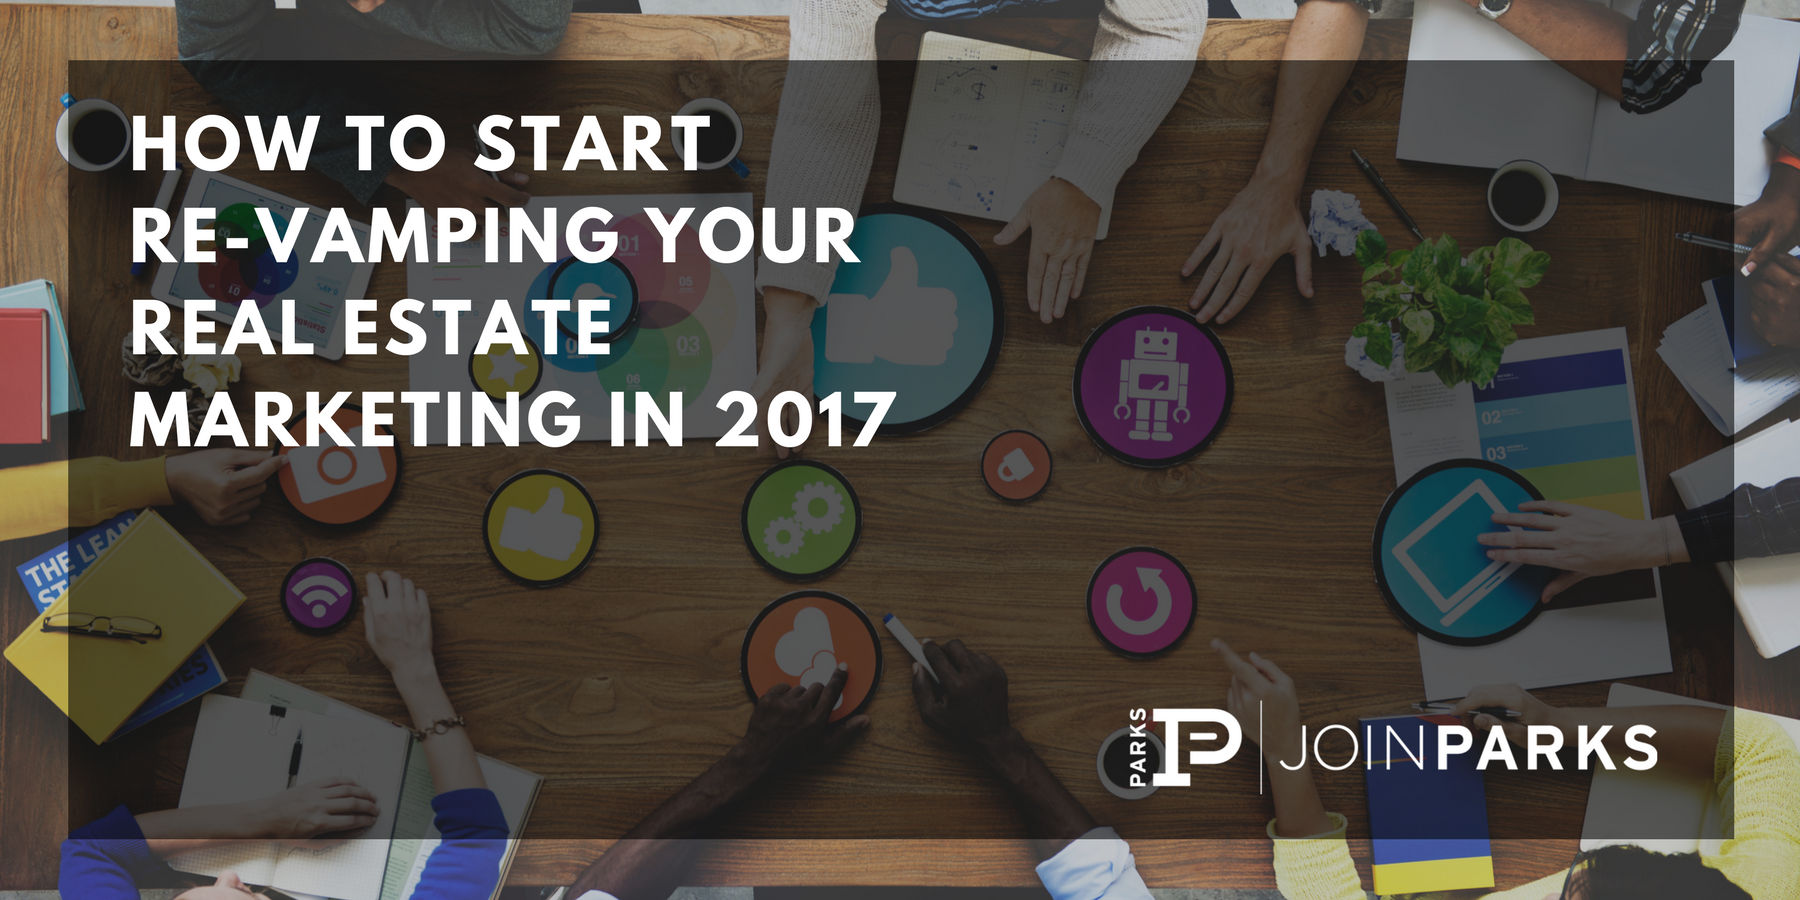 How to Start Re-Vamping Your Real Estate Marketing in 2017.png